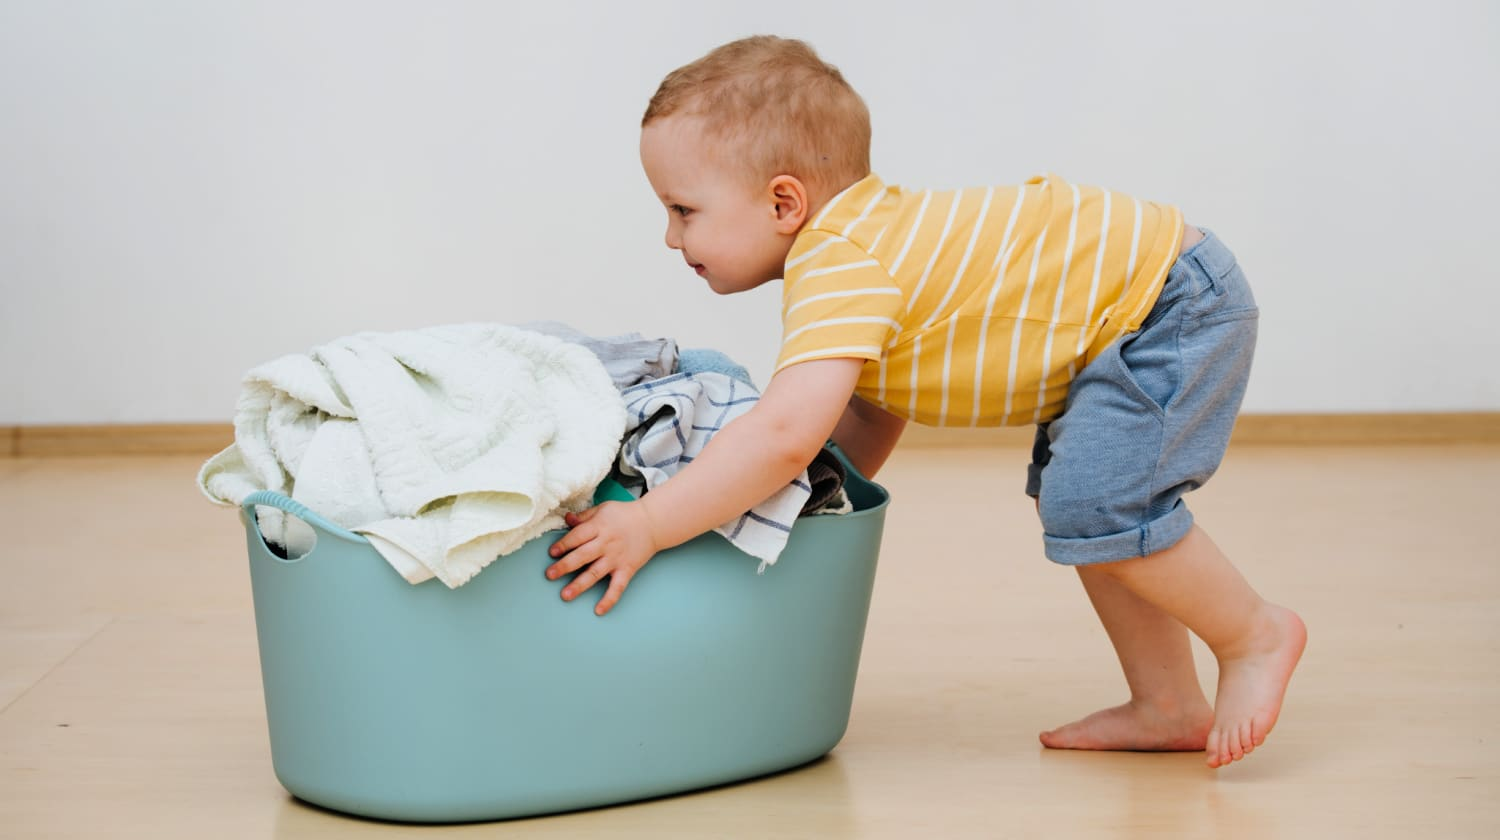 Toddler boy pushes a hamper of laundry across the floor to show age-based chores that kids can do